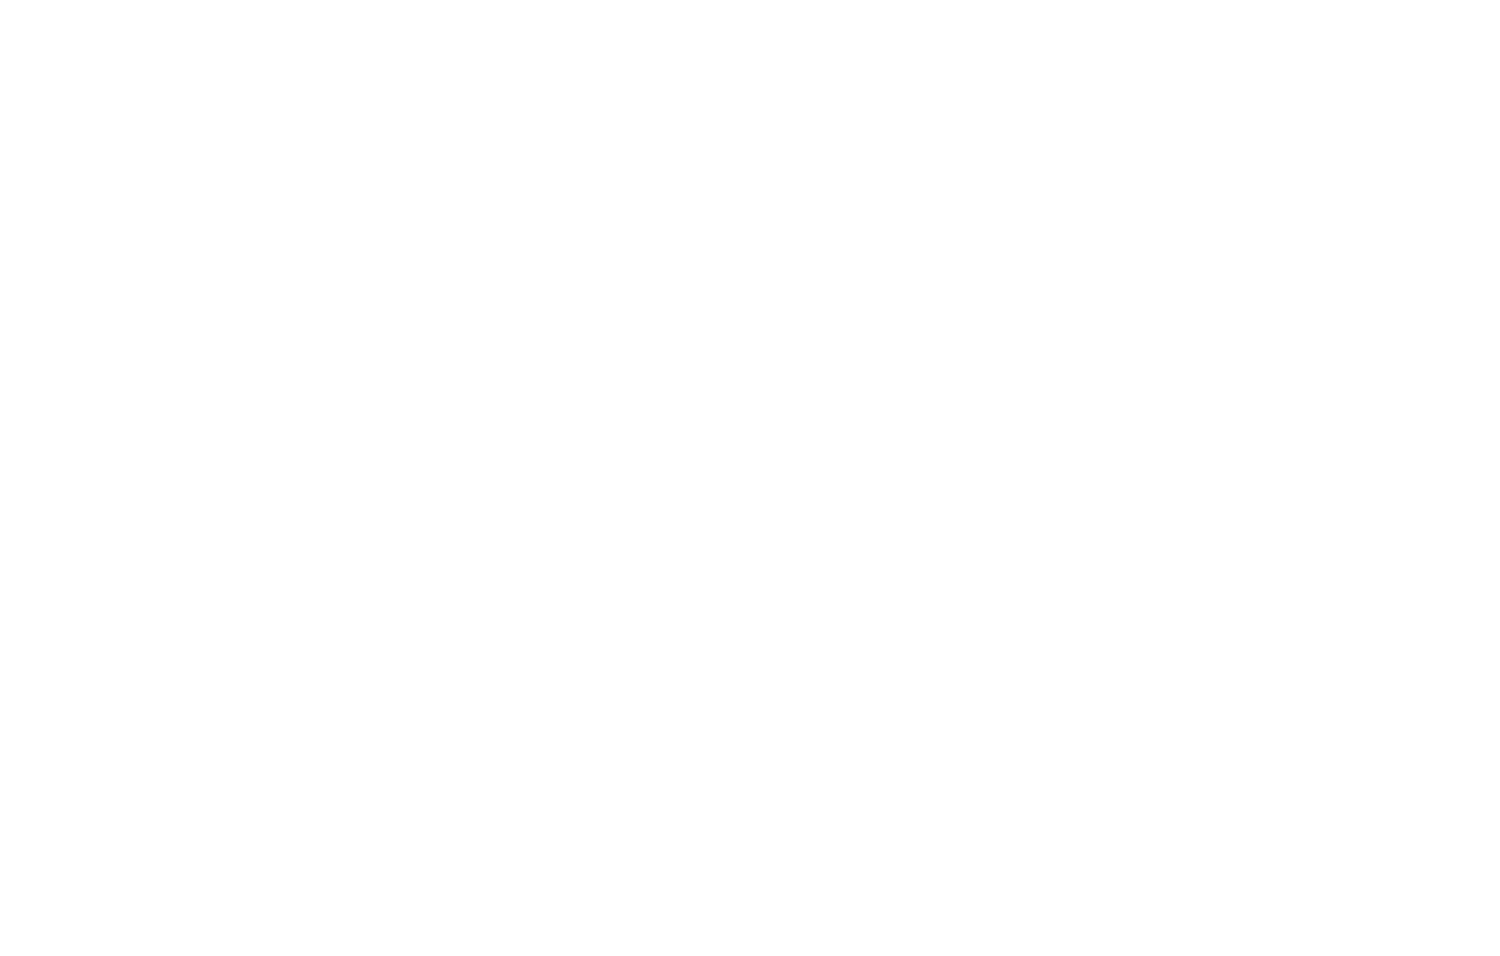 Artisan Outdoor Kitchens